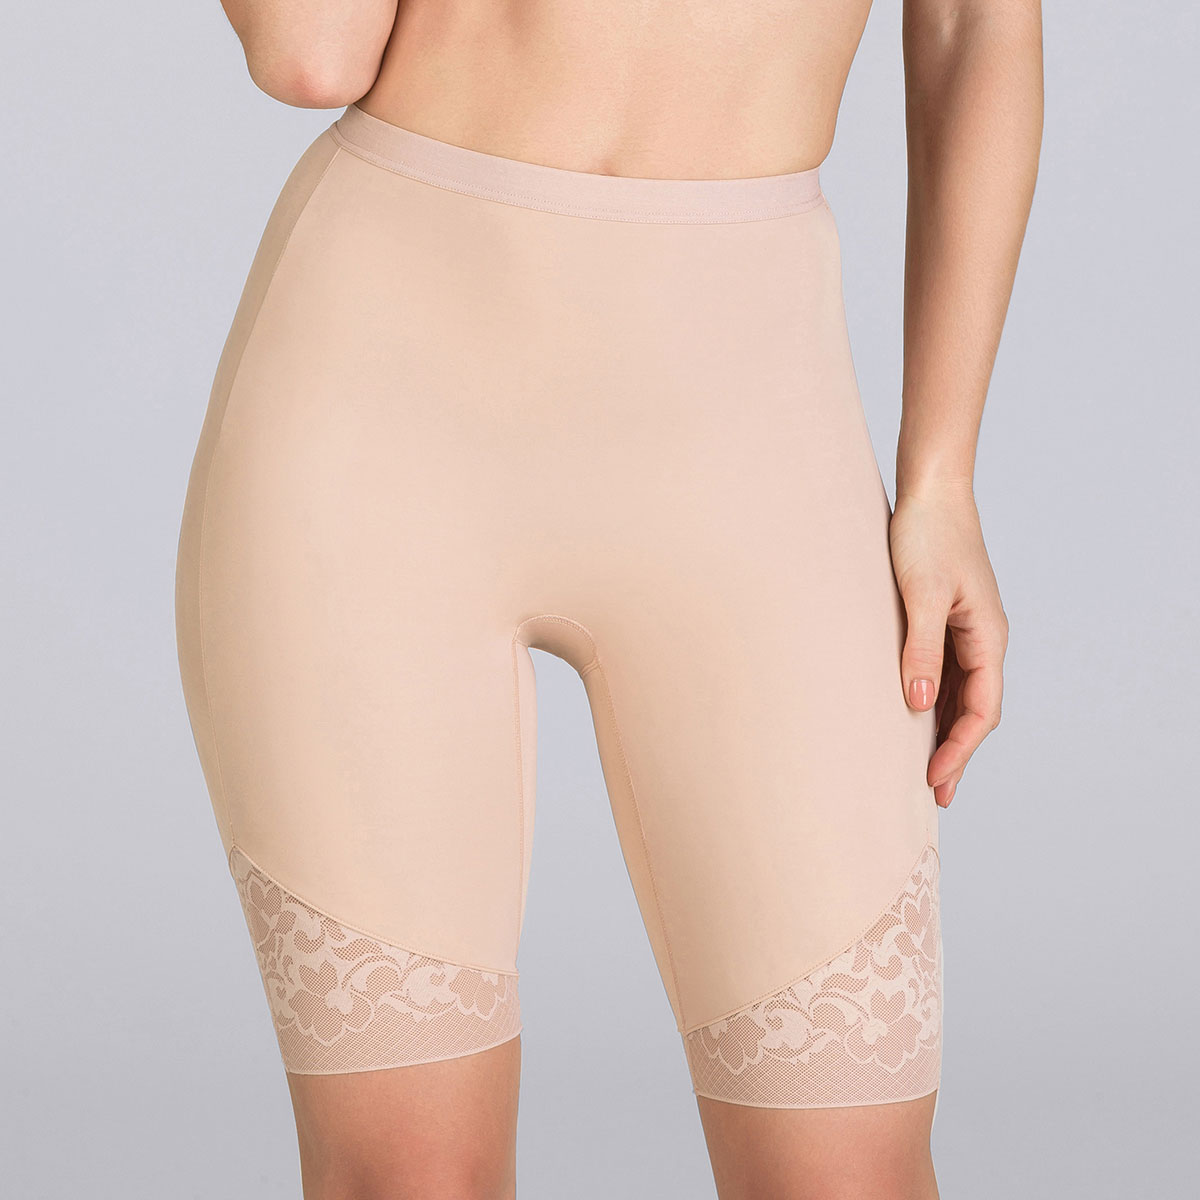 33e019fa75 ... Beige thigh slimmer - Expert in Silhouette-PLAYTEX